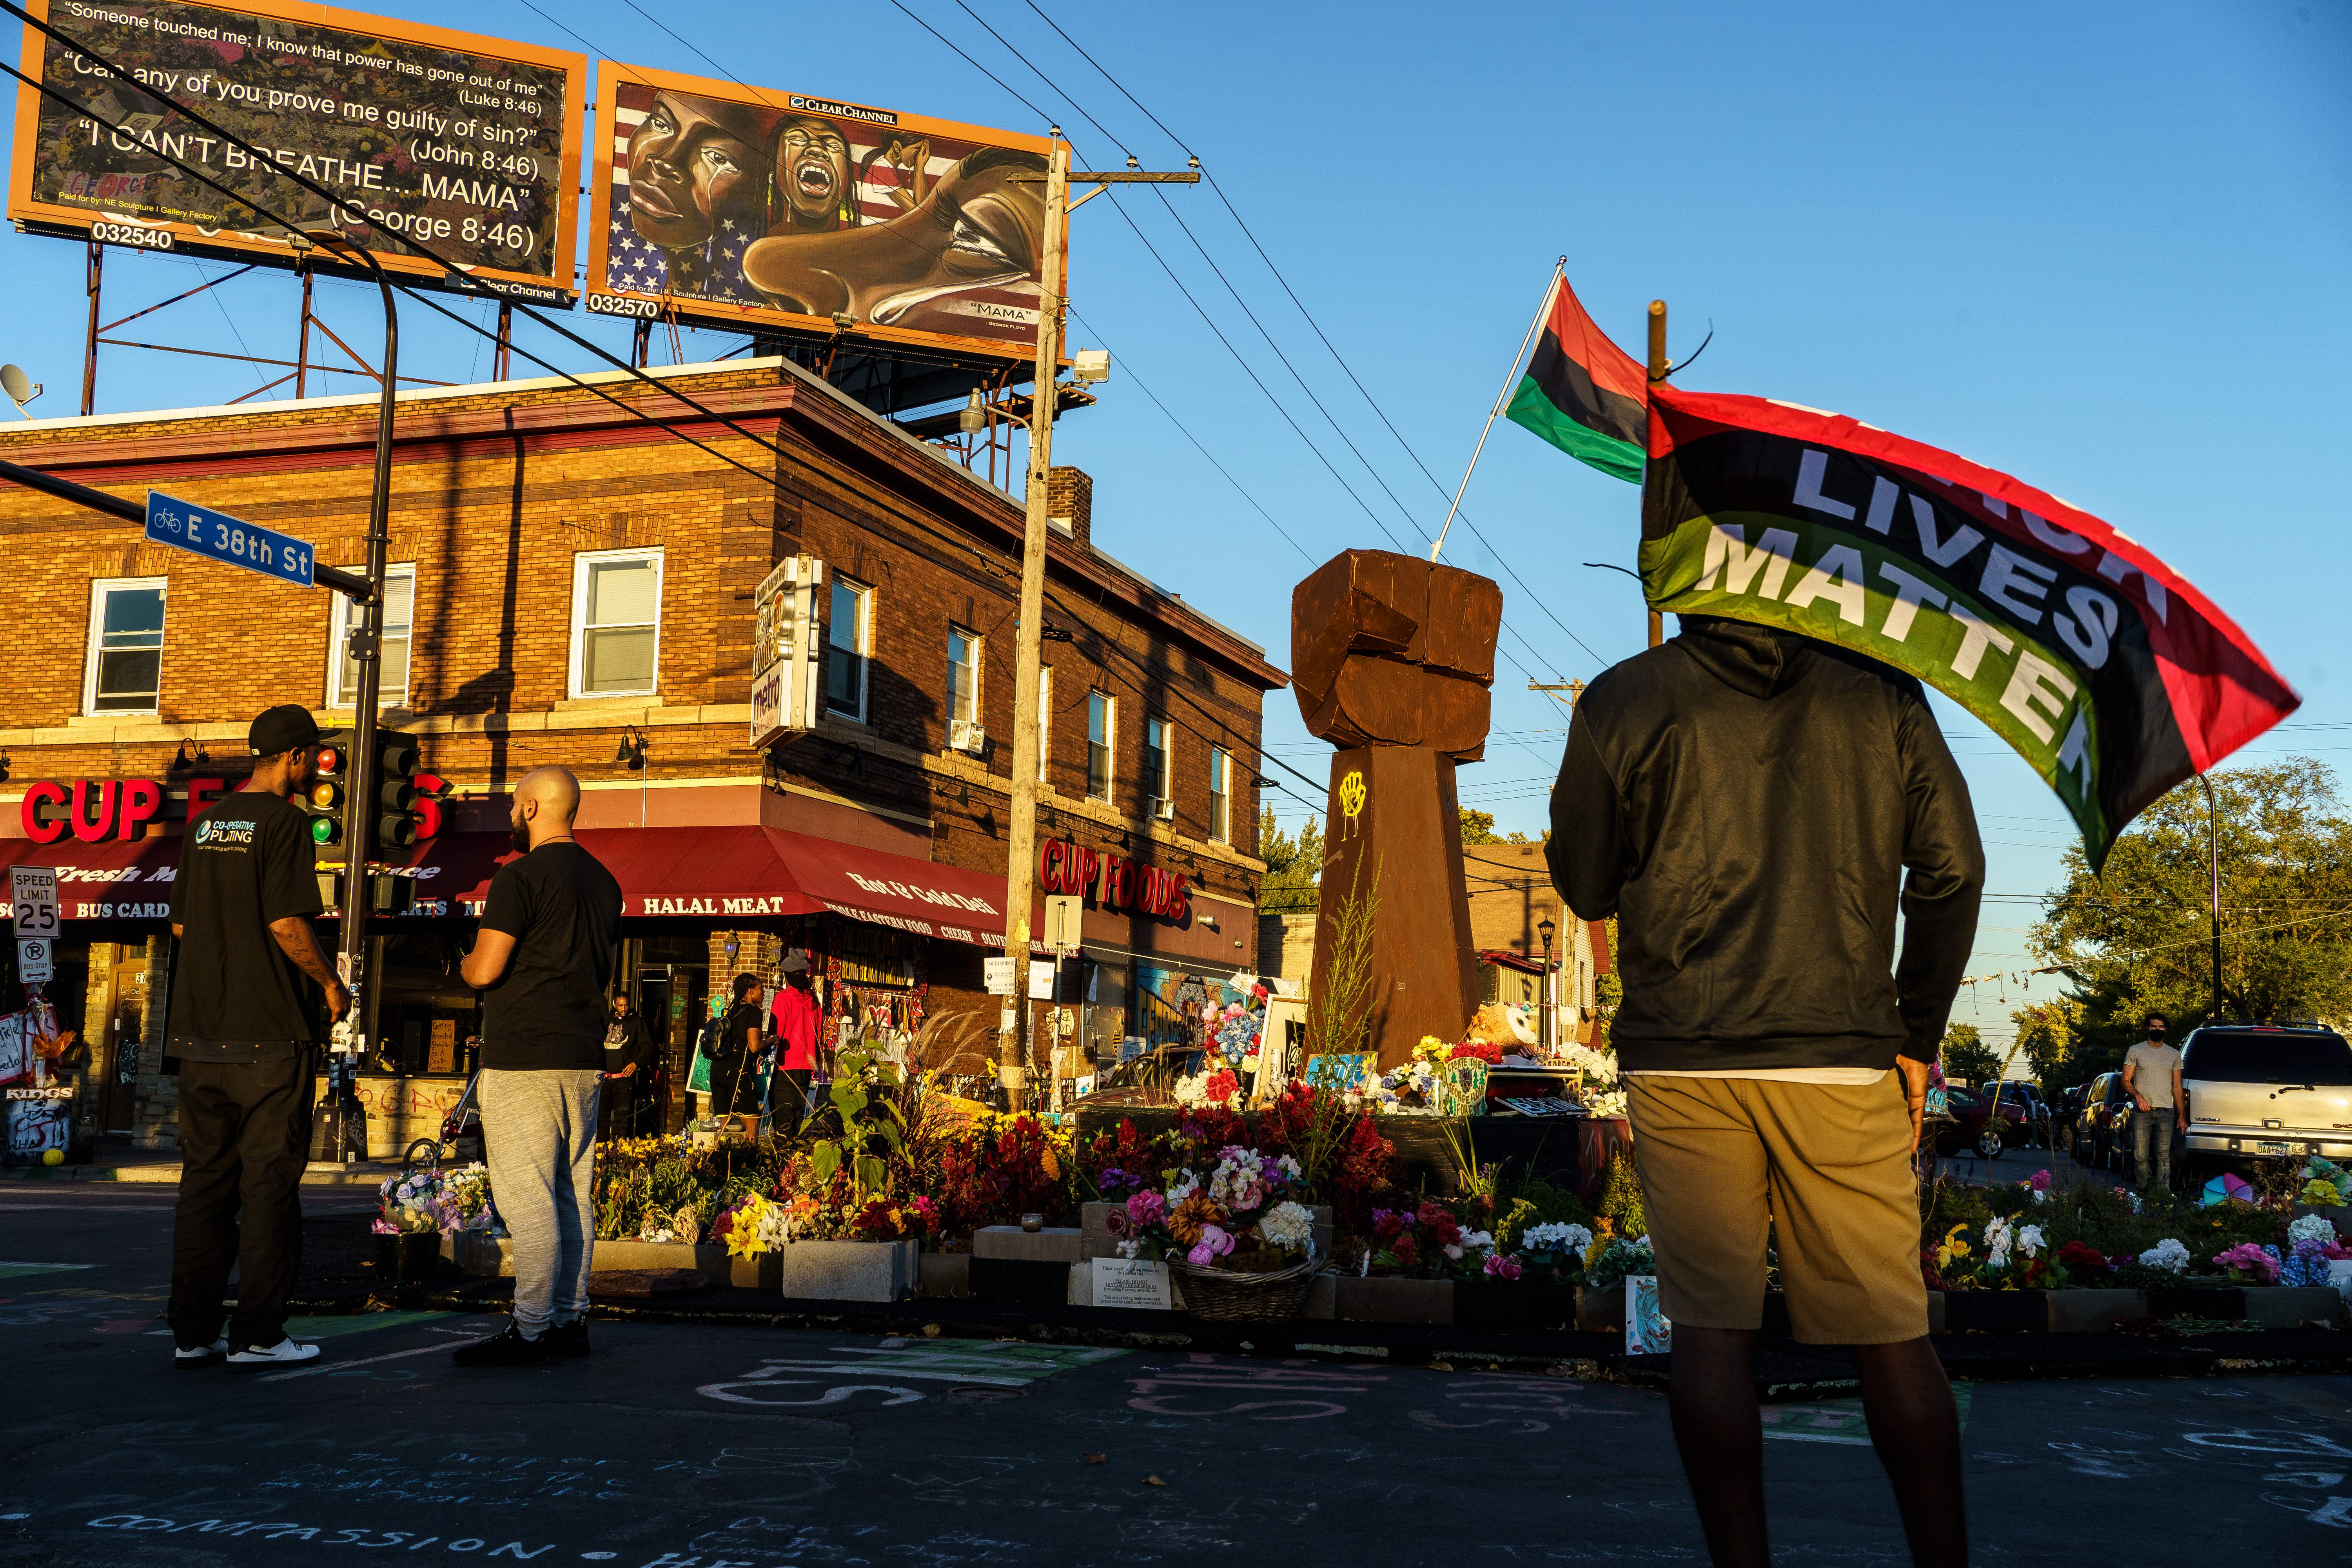 A sculpture of a raised fist rises amid a mass of flowers outside Cup Foods. Two Black men stand in front of the memorial; in the foreground of the photo a Black man in a black hoodie holds a large pan-African flag, with the words Black Lives Matter written on it.